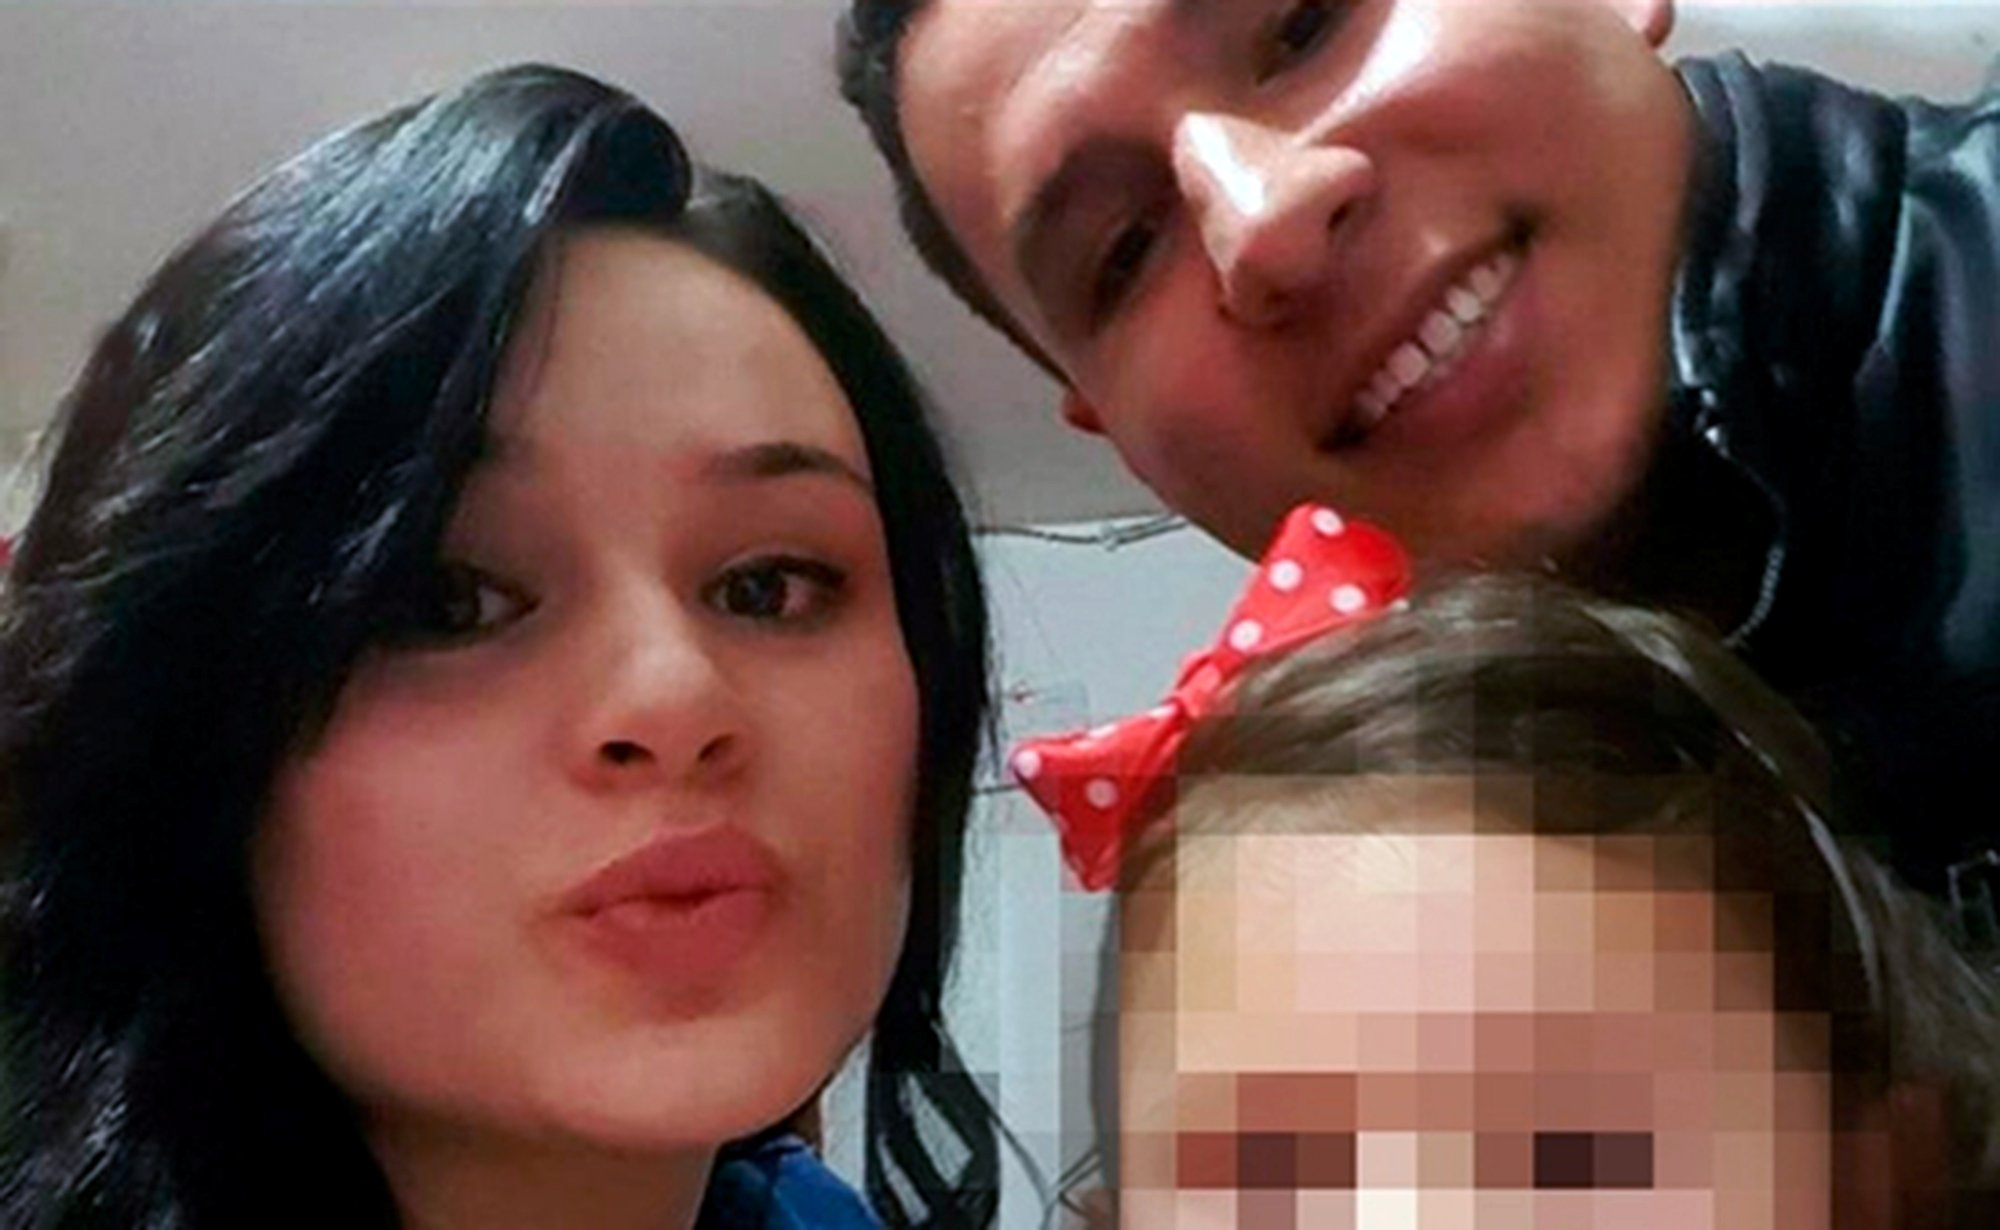 Pic shows: Angie Katerine Herrera and Fray Vicente Ardila Velázquez.nnBy Miruna FantanescunnThis is the shocking moment that a police officer stabbed his pretty pregnant wife to death in a crowded supermarket.nnThe horrific incident was captured on the security cameras of the store in the Colombian capital city of Bogota.nnOther shoppers tried to pull the off duty cop off his wife as he repeatedly stabbed her with a knife.nnThe video footage, which later went viral after being posted online, shows him fighting off two women, knocking one of them to the floor.nnThe police officer, whose name has not been released, then ran from the store leaving his wife, Angie Katerine Herrera, for dead.nnBut he was grabbed by eyewitnesses and passersby who held him until police officers arrived to arrest him.nnThe policeman had followed his wife to the supermarket in the Tunjuelito area of the city after they argued at home earlier that day.nnFriends and neighbours said the couple had not been getting on well for some weeks.nnThe police officer, who was on leave, is being held in police custody and faces murder charges.nnBogota was considered one of the most violent cities in the world in the 1990s but is much improved following a ban on carrying guns in public.nn(ends)